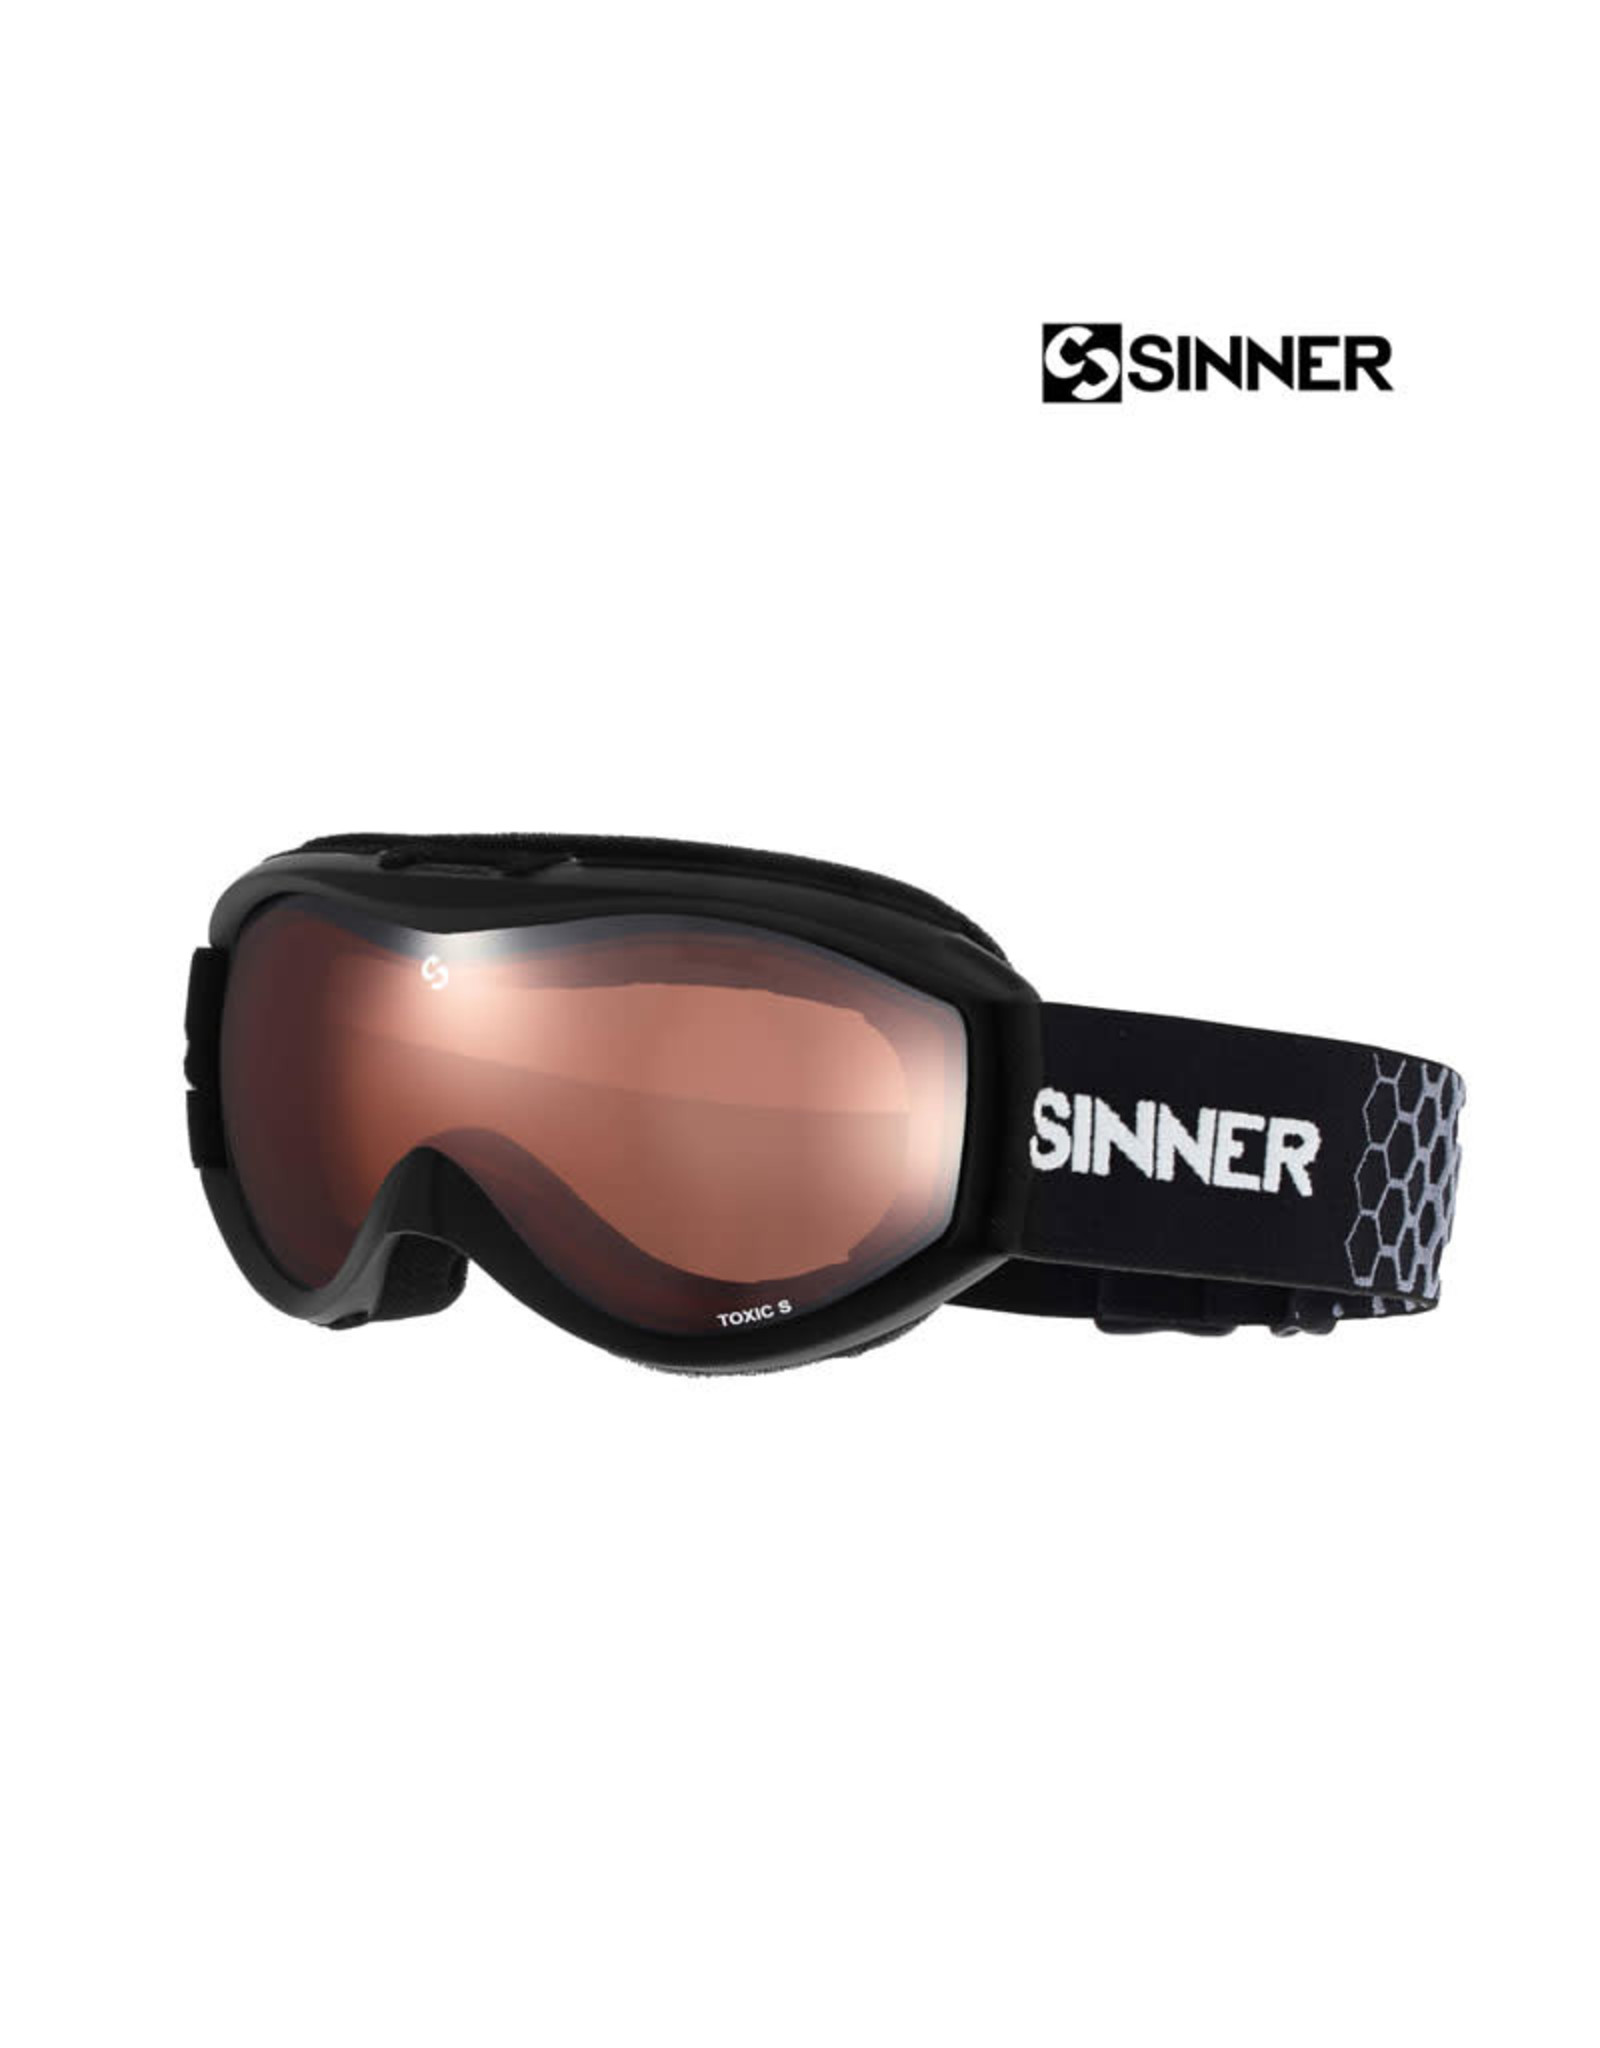 SINNER SKIBRIL SINNER DUCK MOUNTAIN Mat Black Jr.